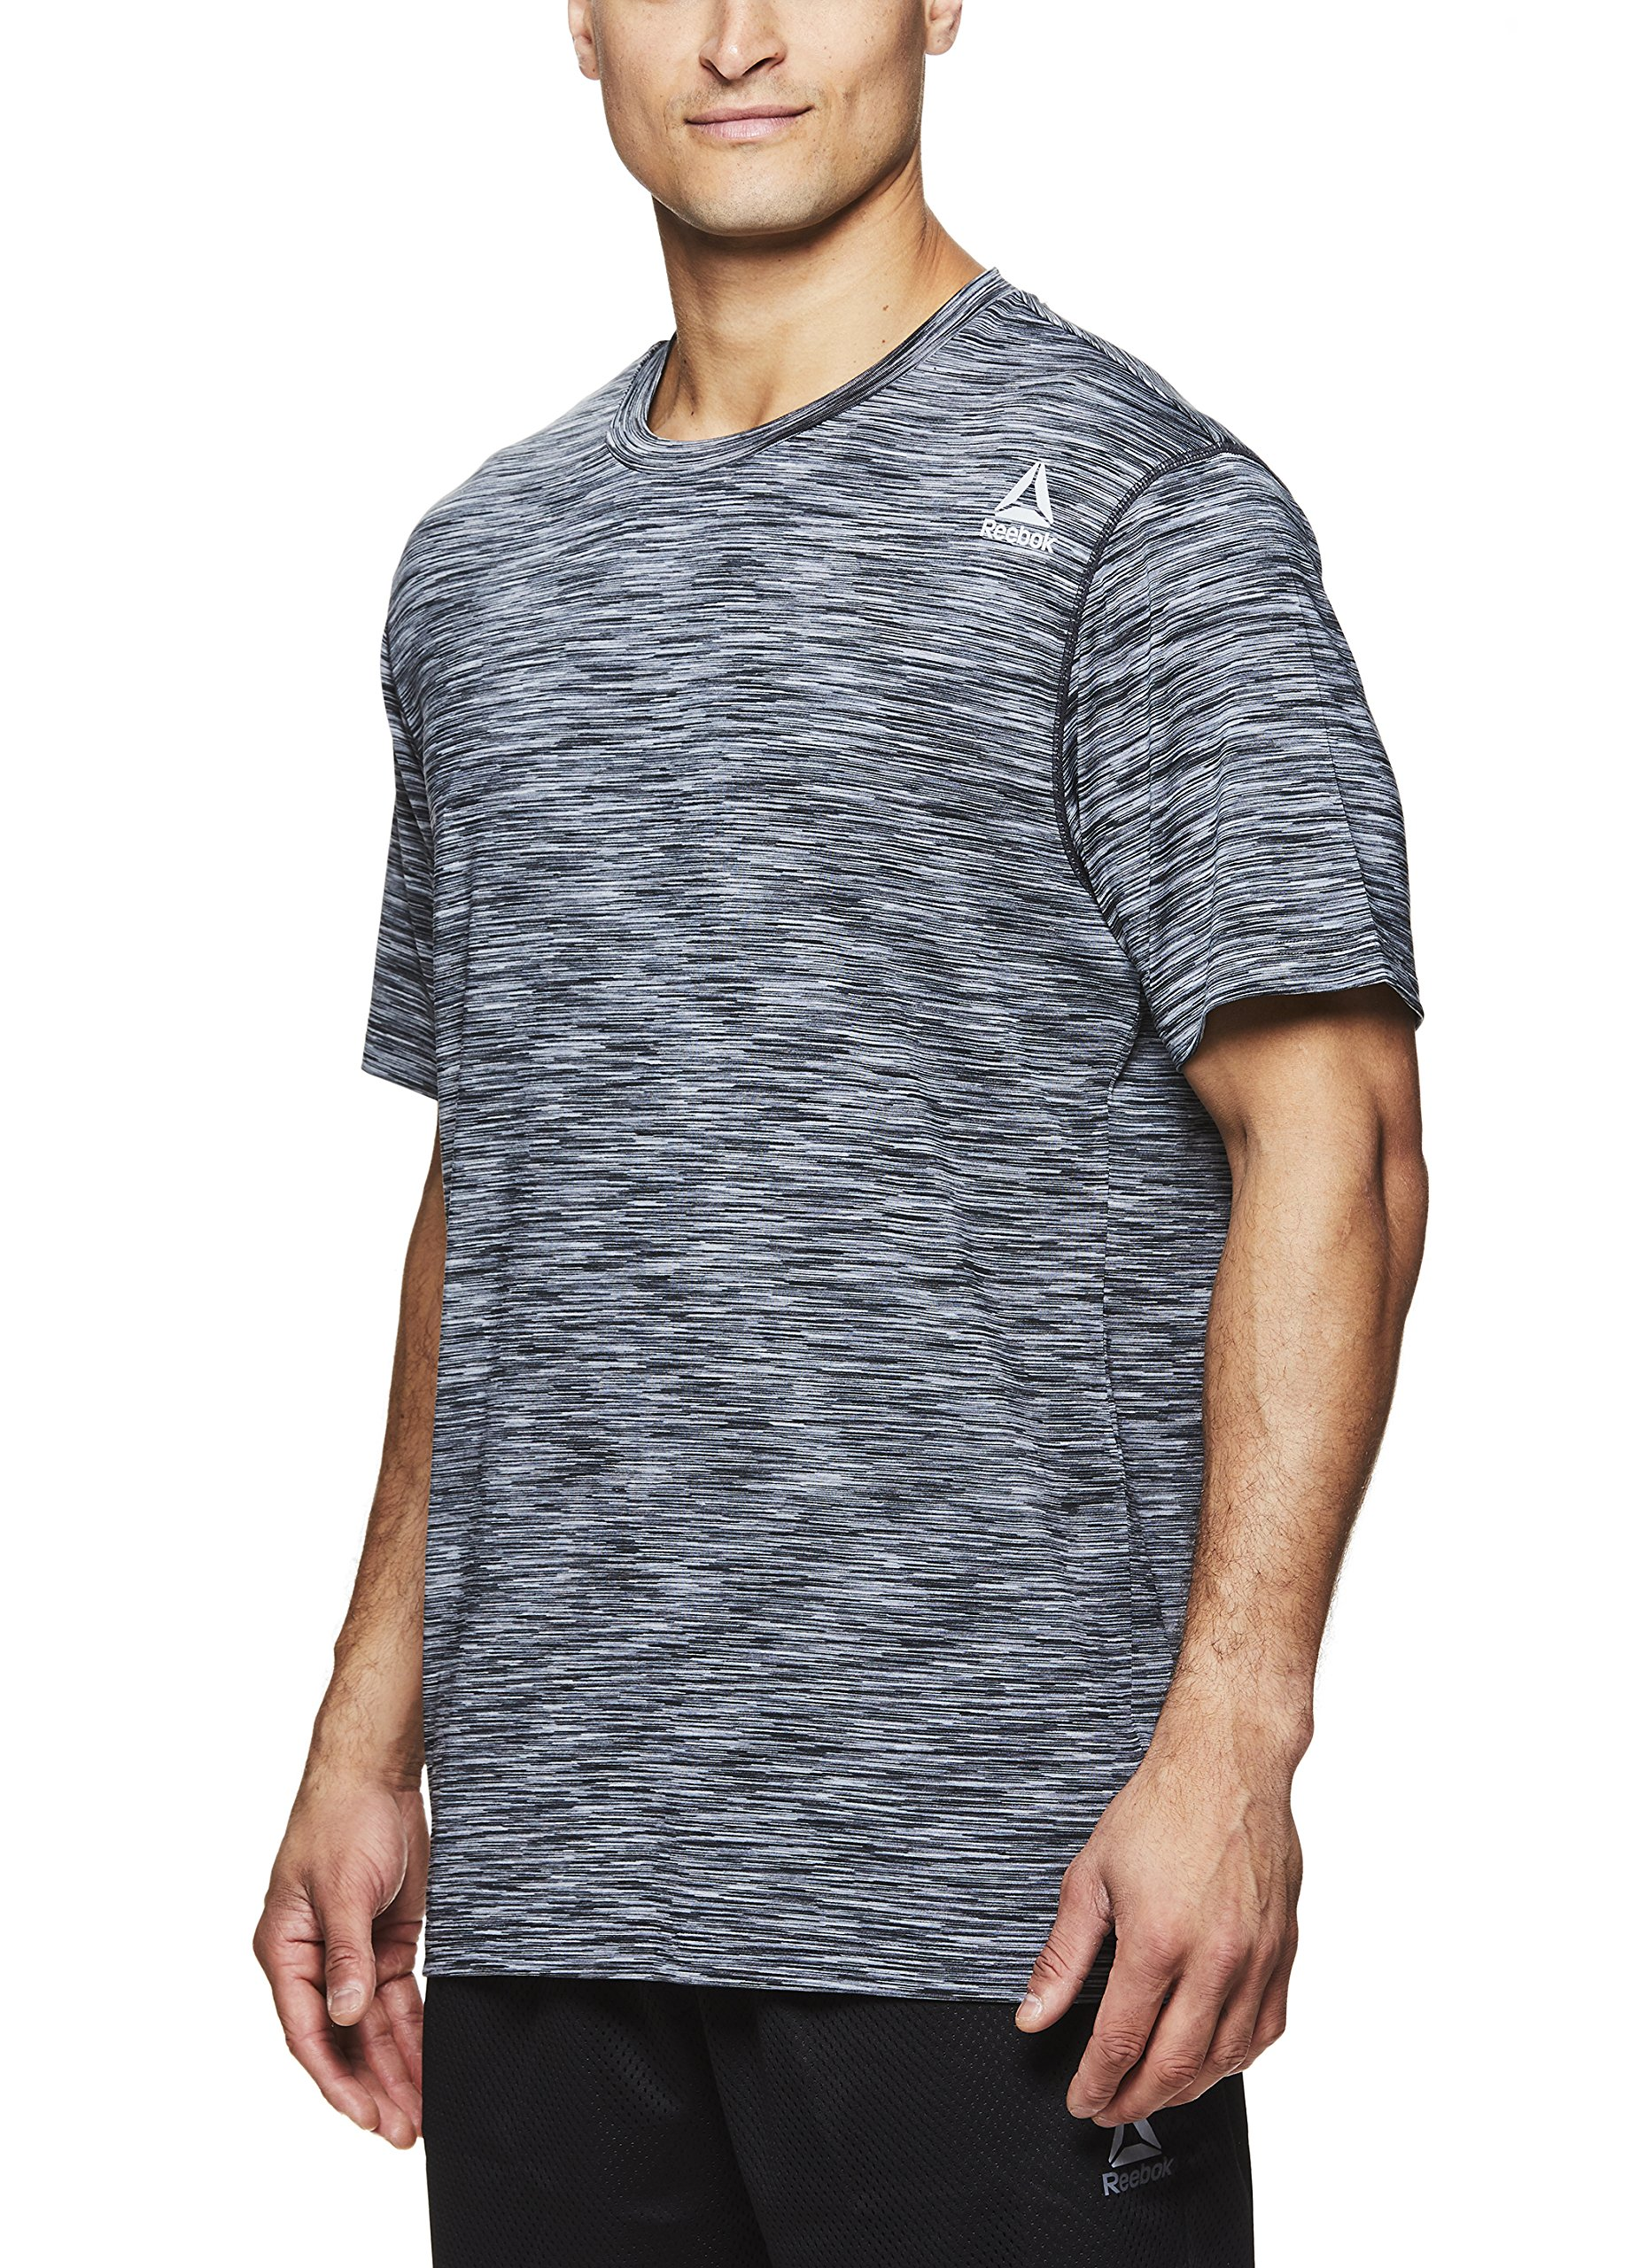 Reebok Men's Supersonic Crewneck Workout T-Shirt Designed with Performance Material - Black Decline Press, Small